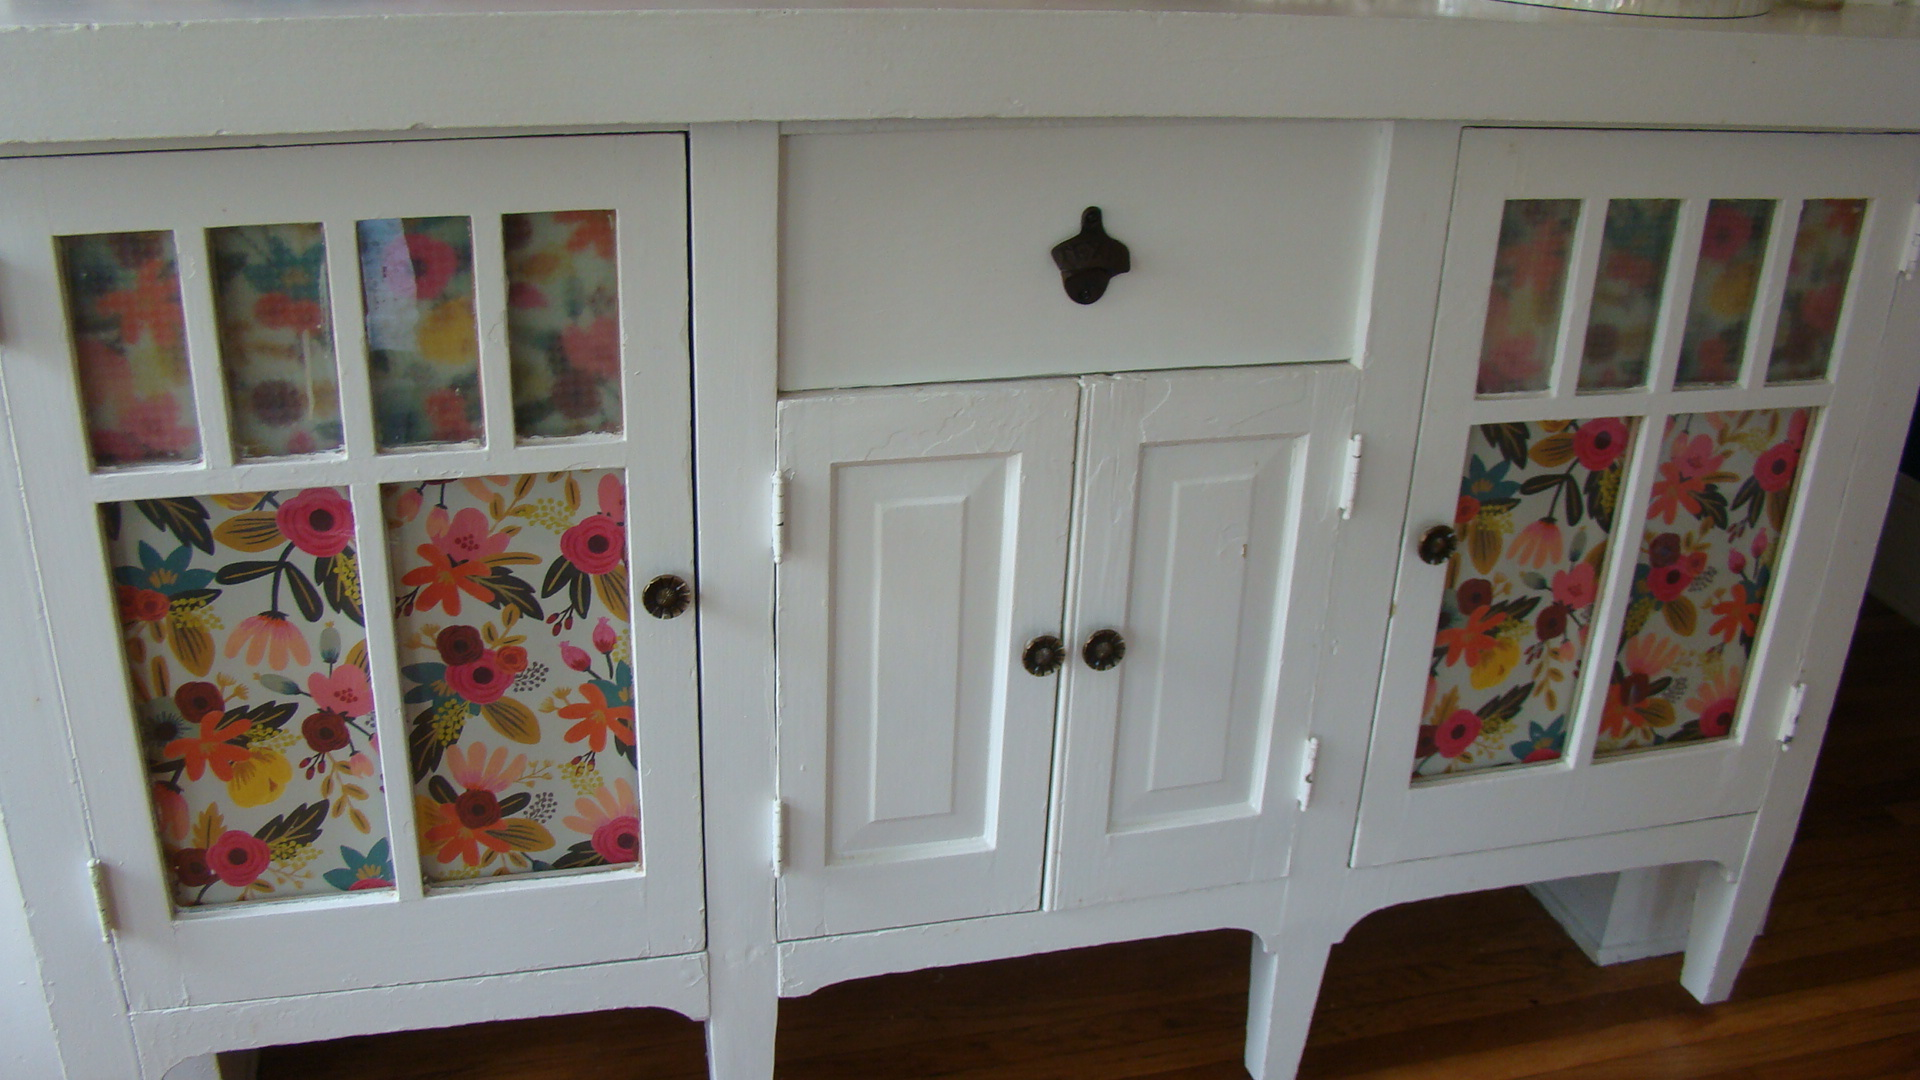 Ta-da! I just taped these pretty pieces of paper on the backside of their glass front cabinets. A super easy fix!